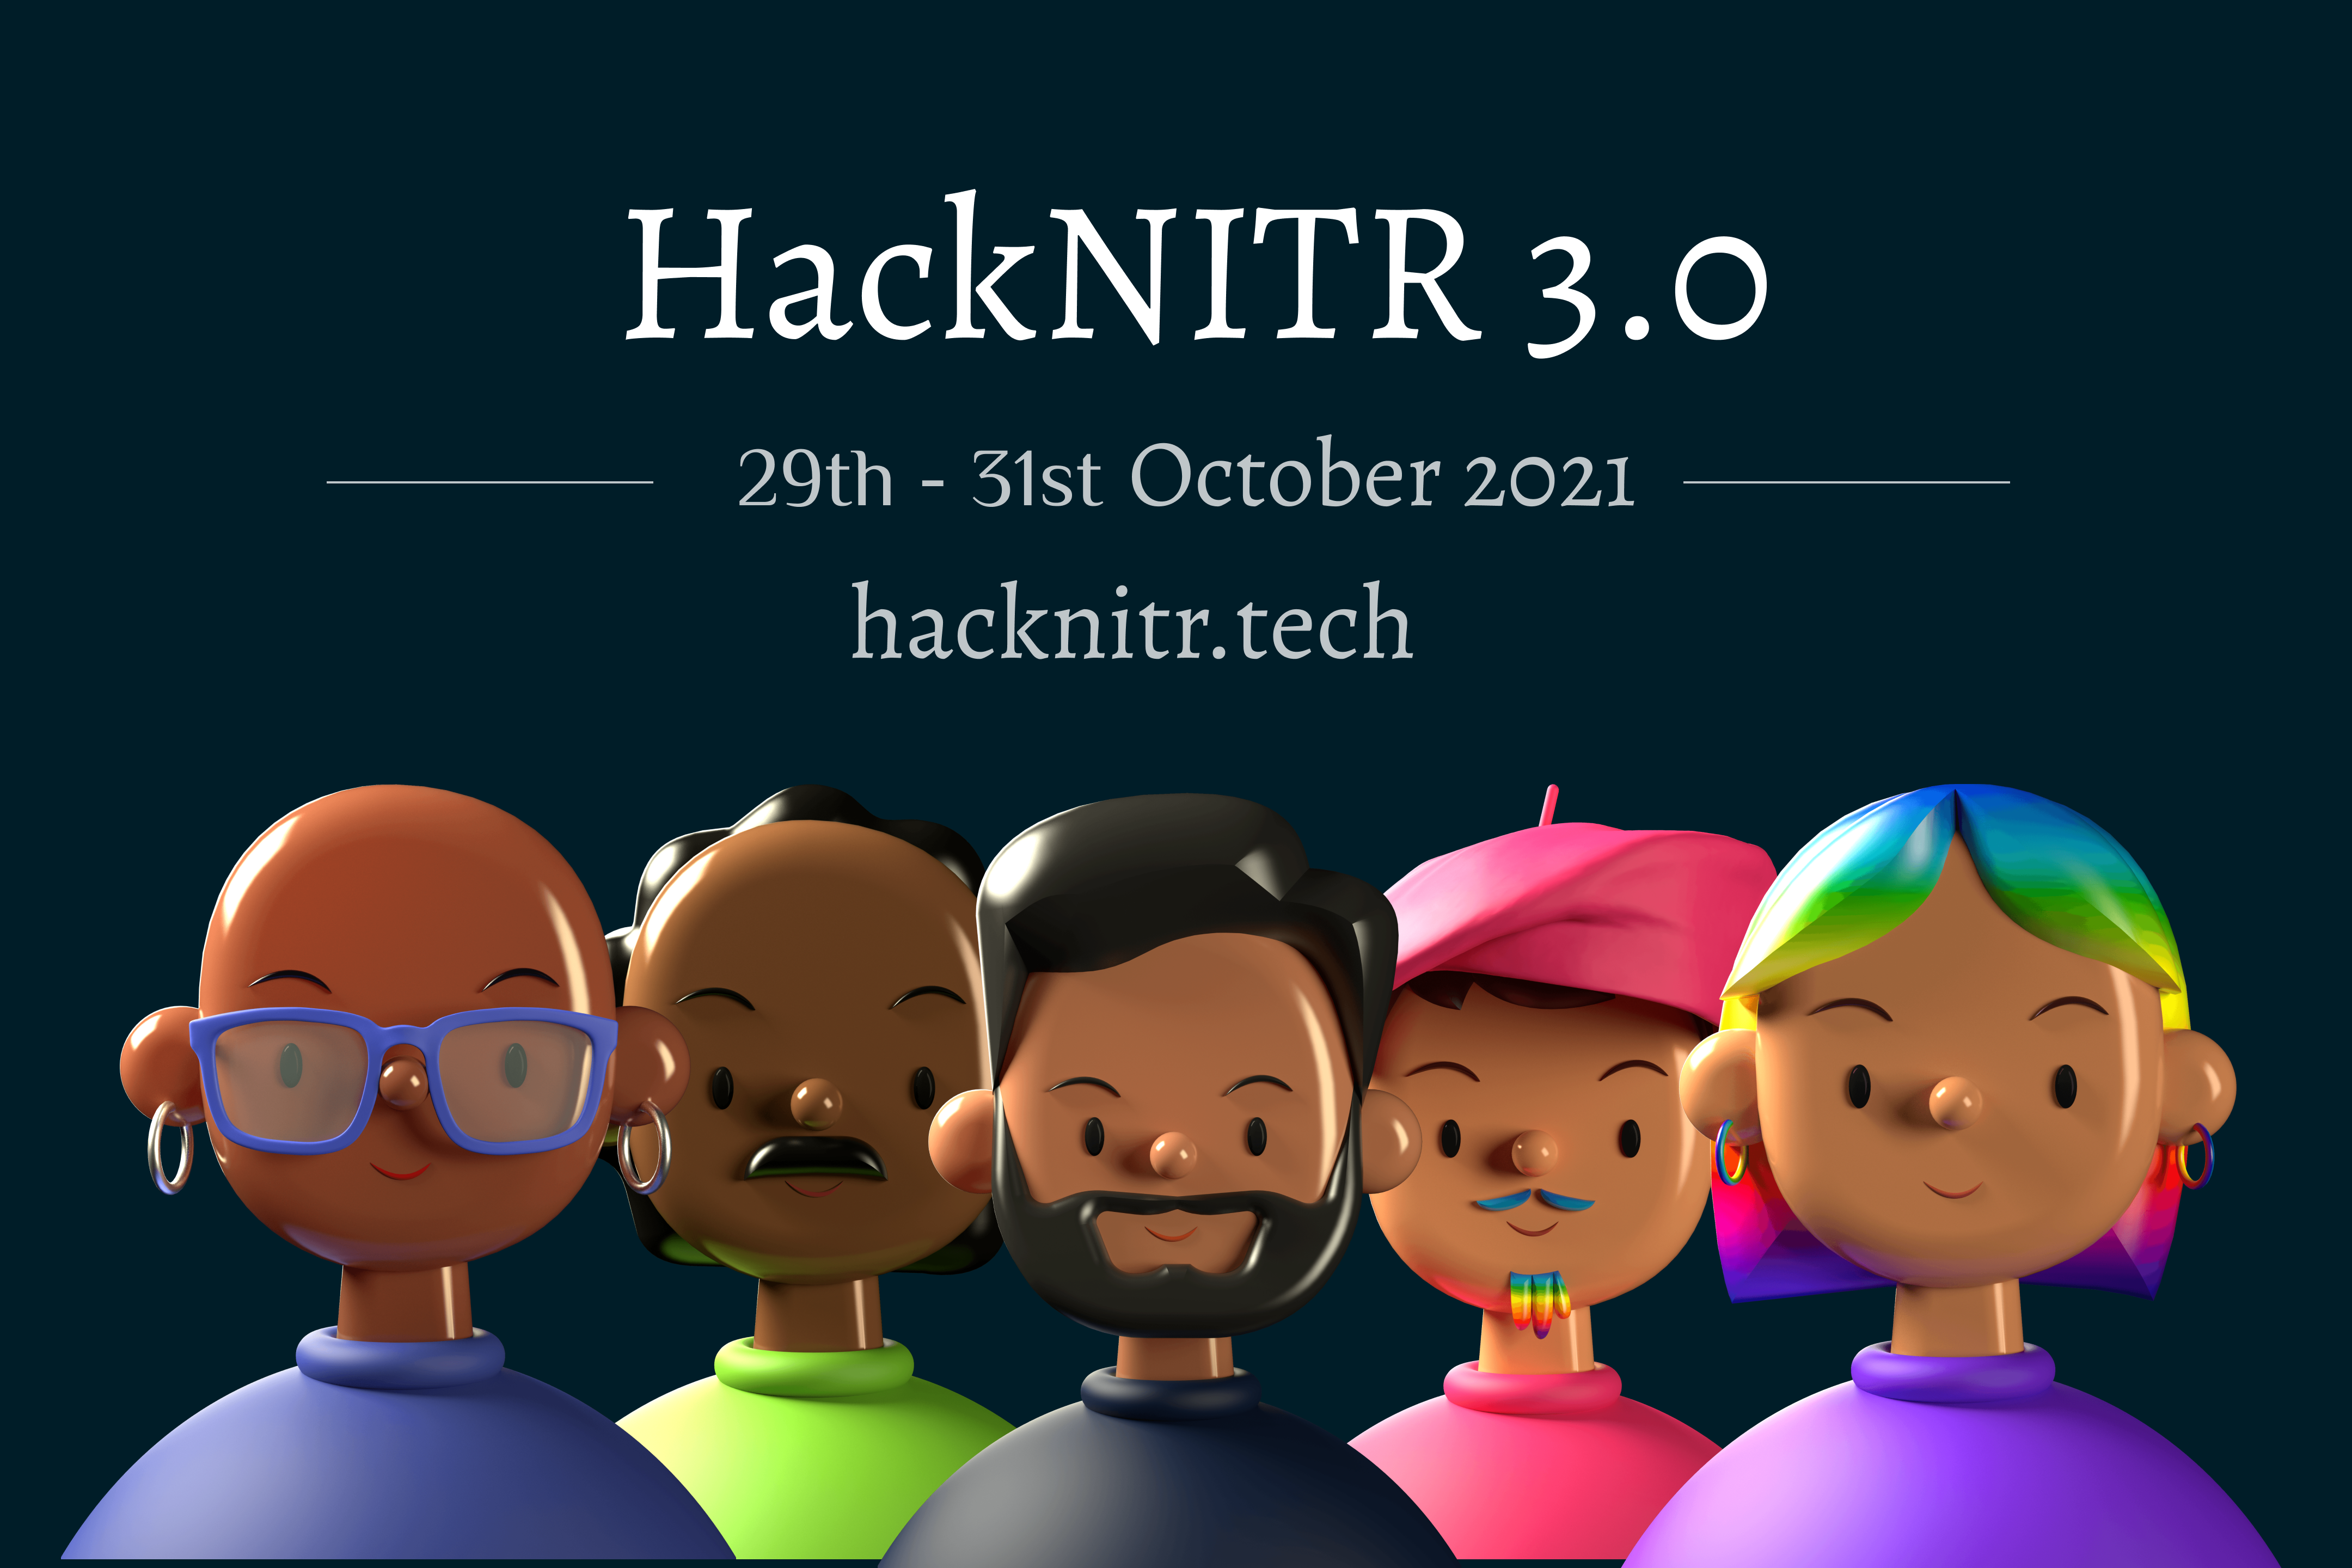 A student run hackathon where hackers can ideate, implement, innovate.